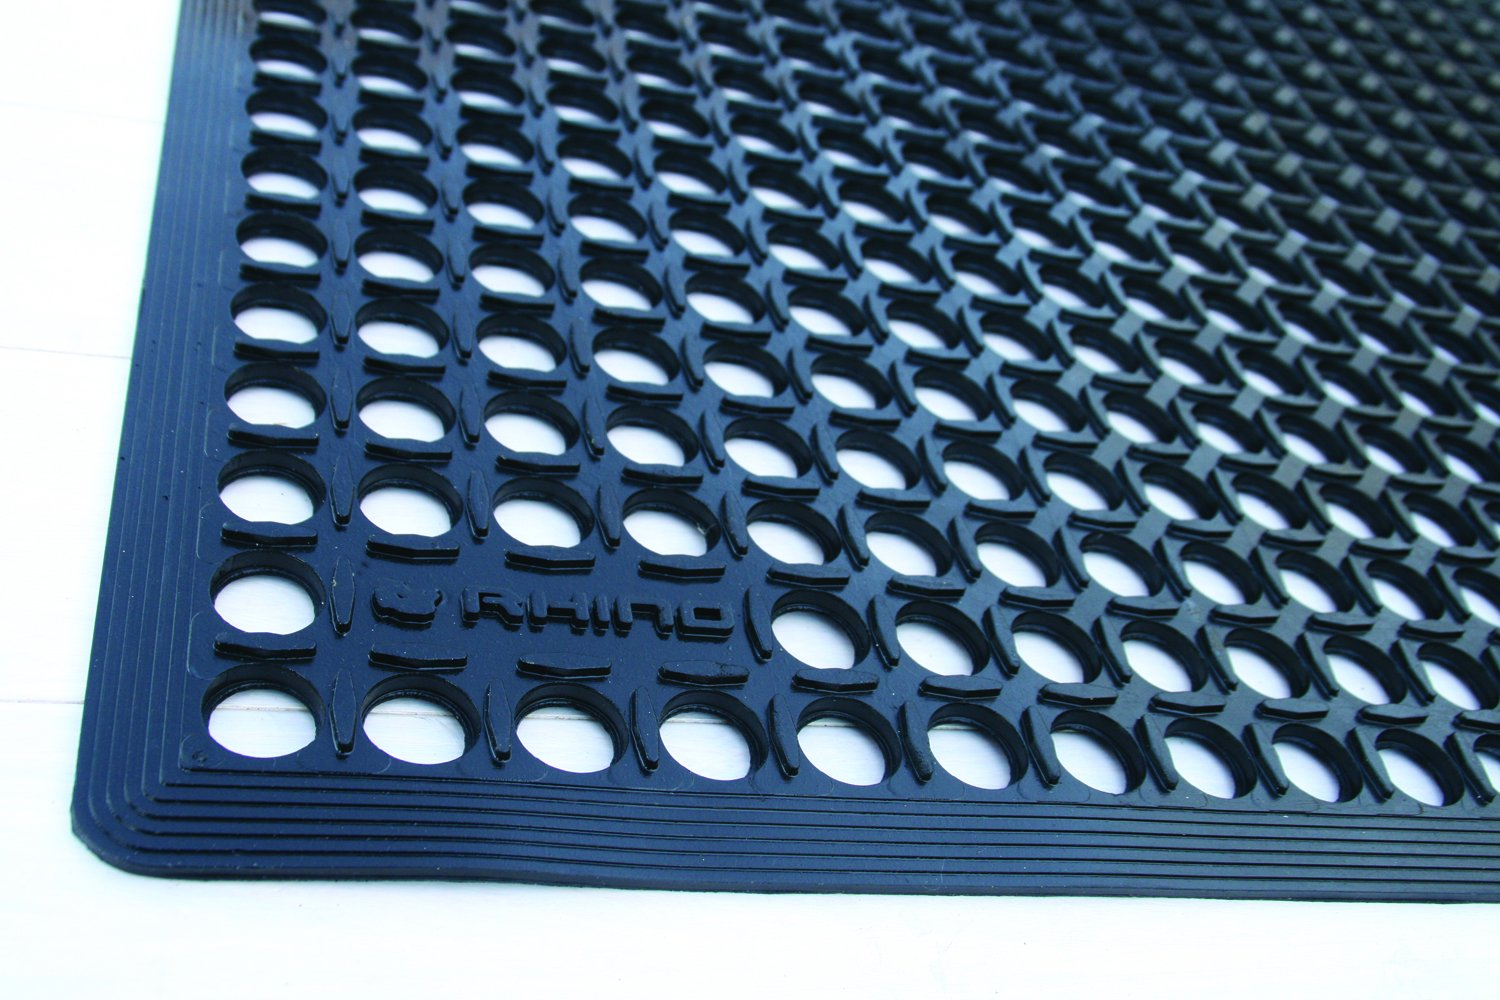 Rhino Mats KCT-3660B K-Series Comfort Tract Anti-fatigue Drain-thru Mat, 3' x 5', Black by Rhino Mats (Image #1)